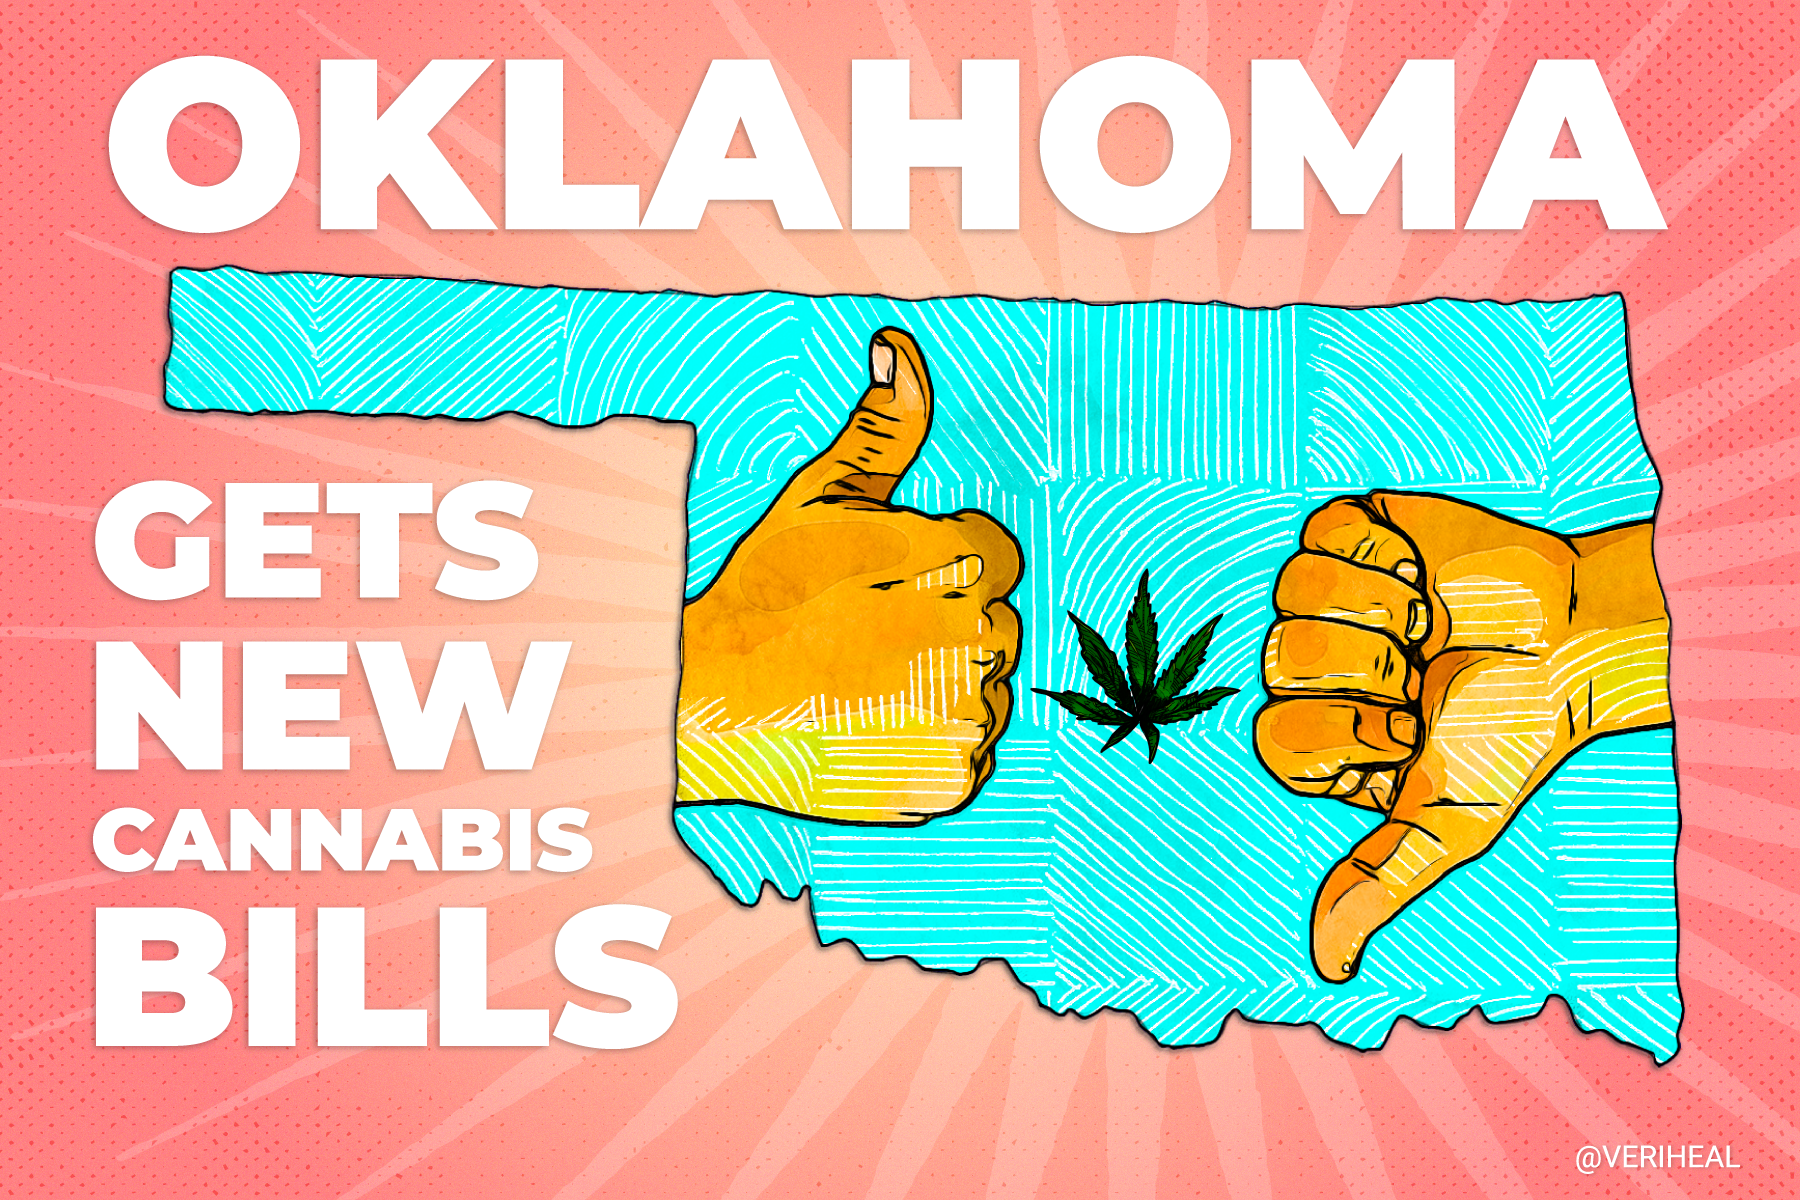 New Cannabis Bills Get Drafted in Oklahoma